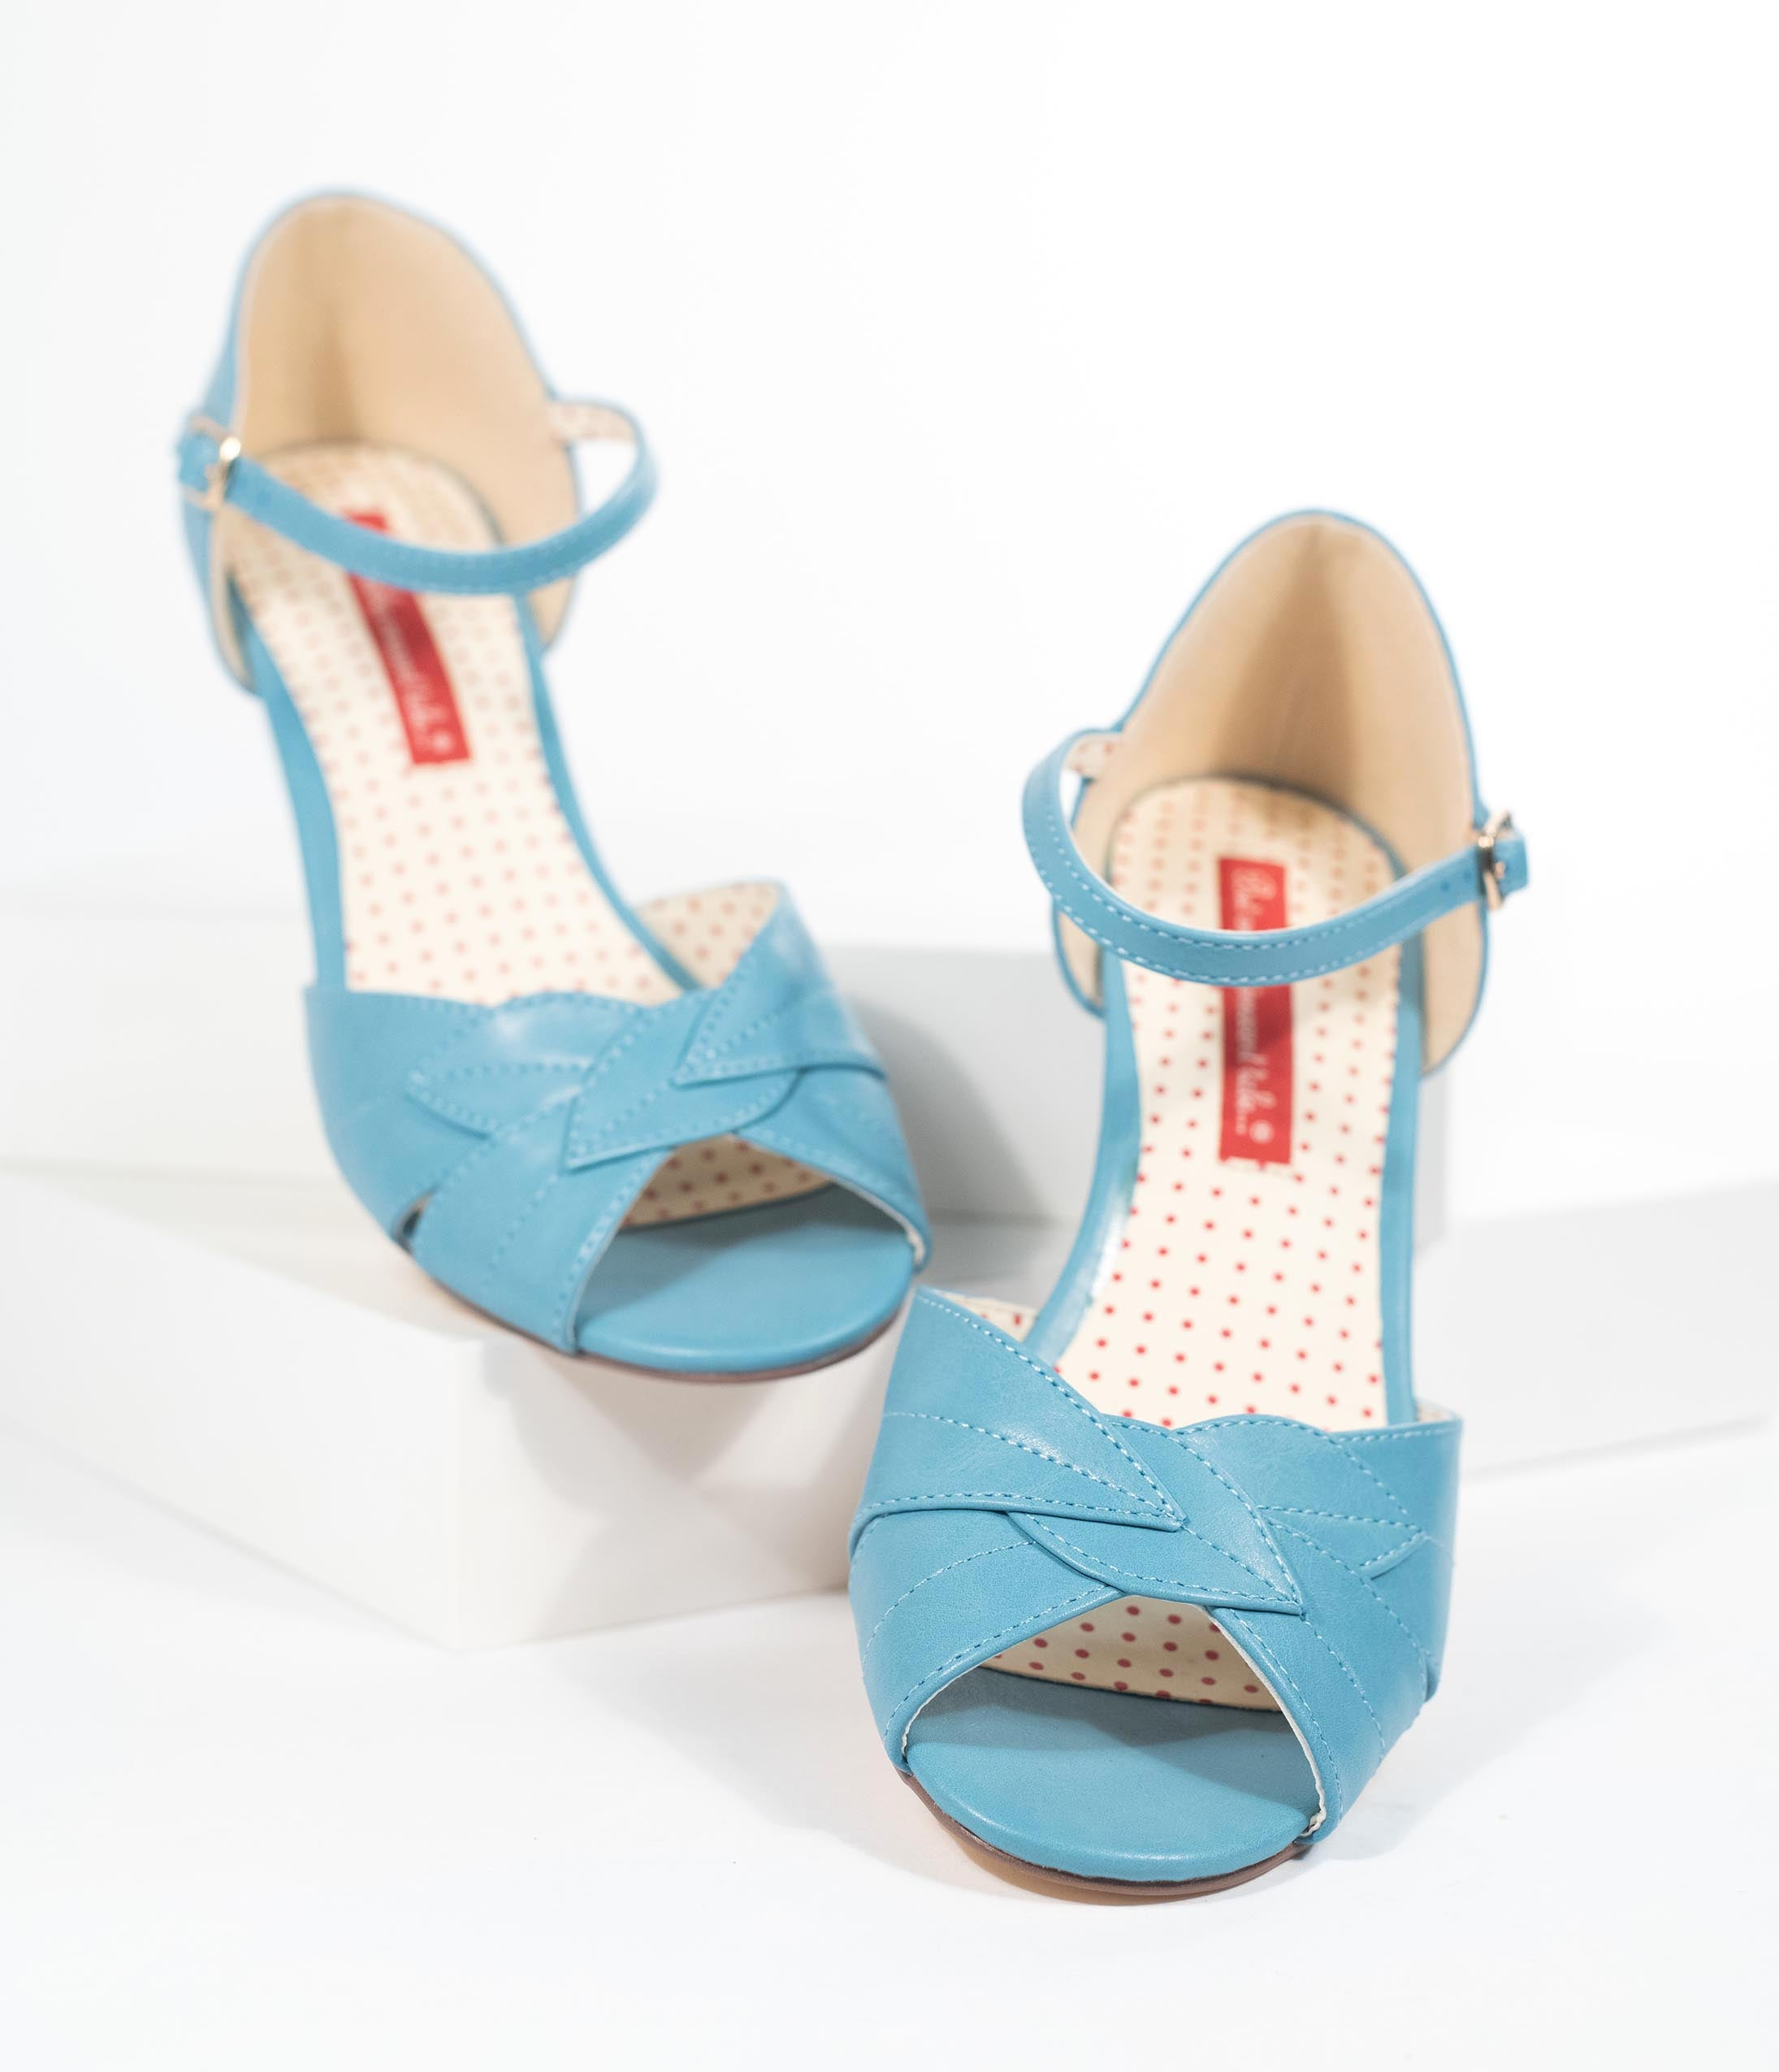 1950s Shoe Styles: Heels, Flats, Sandals, Saddles Shoes B.a.i.t. 1950S Style Cornflower Blue Leatherette Leaf Peep Toe Danita Wedges $70.00 AT vintagedancer.com